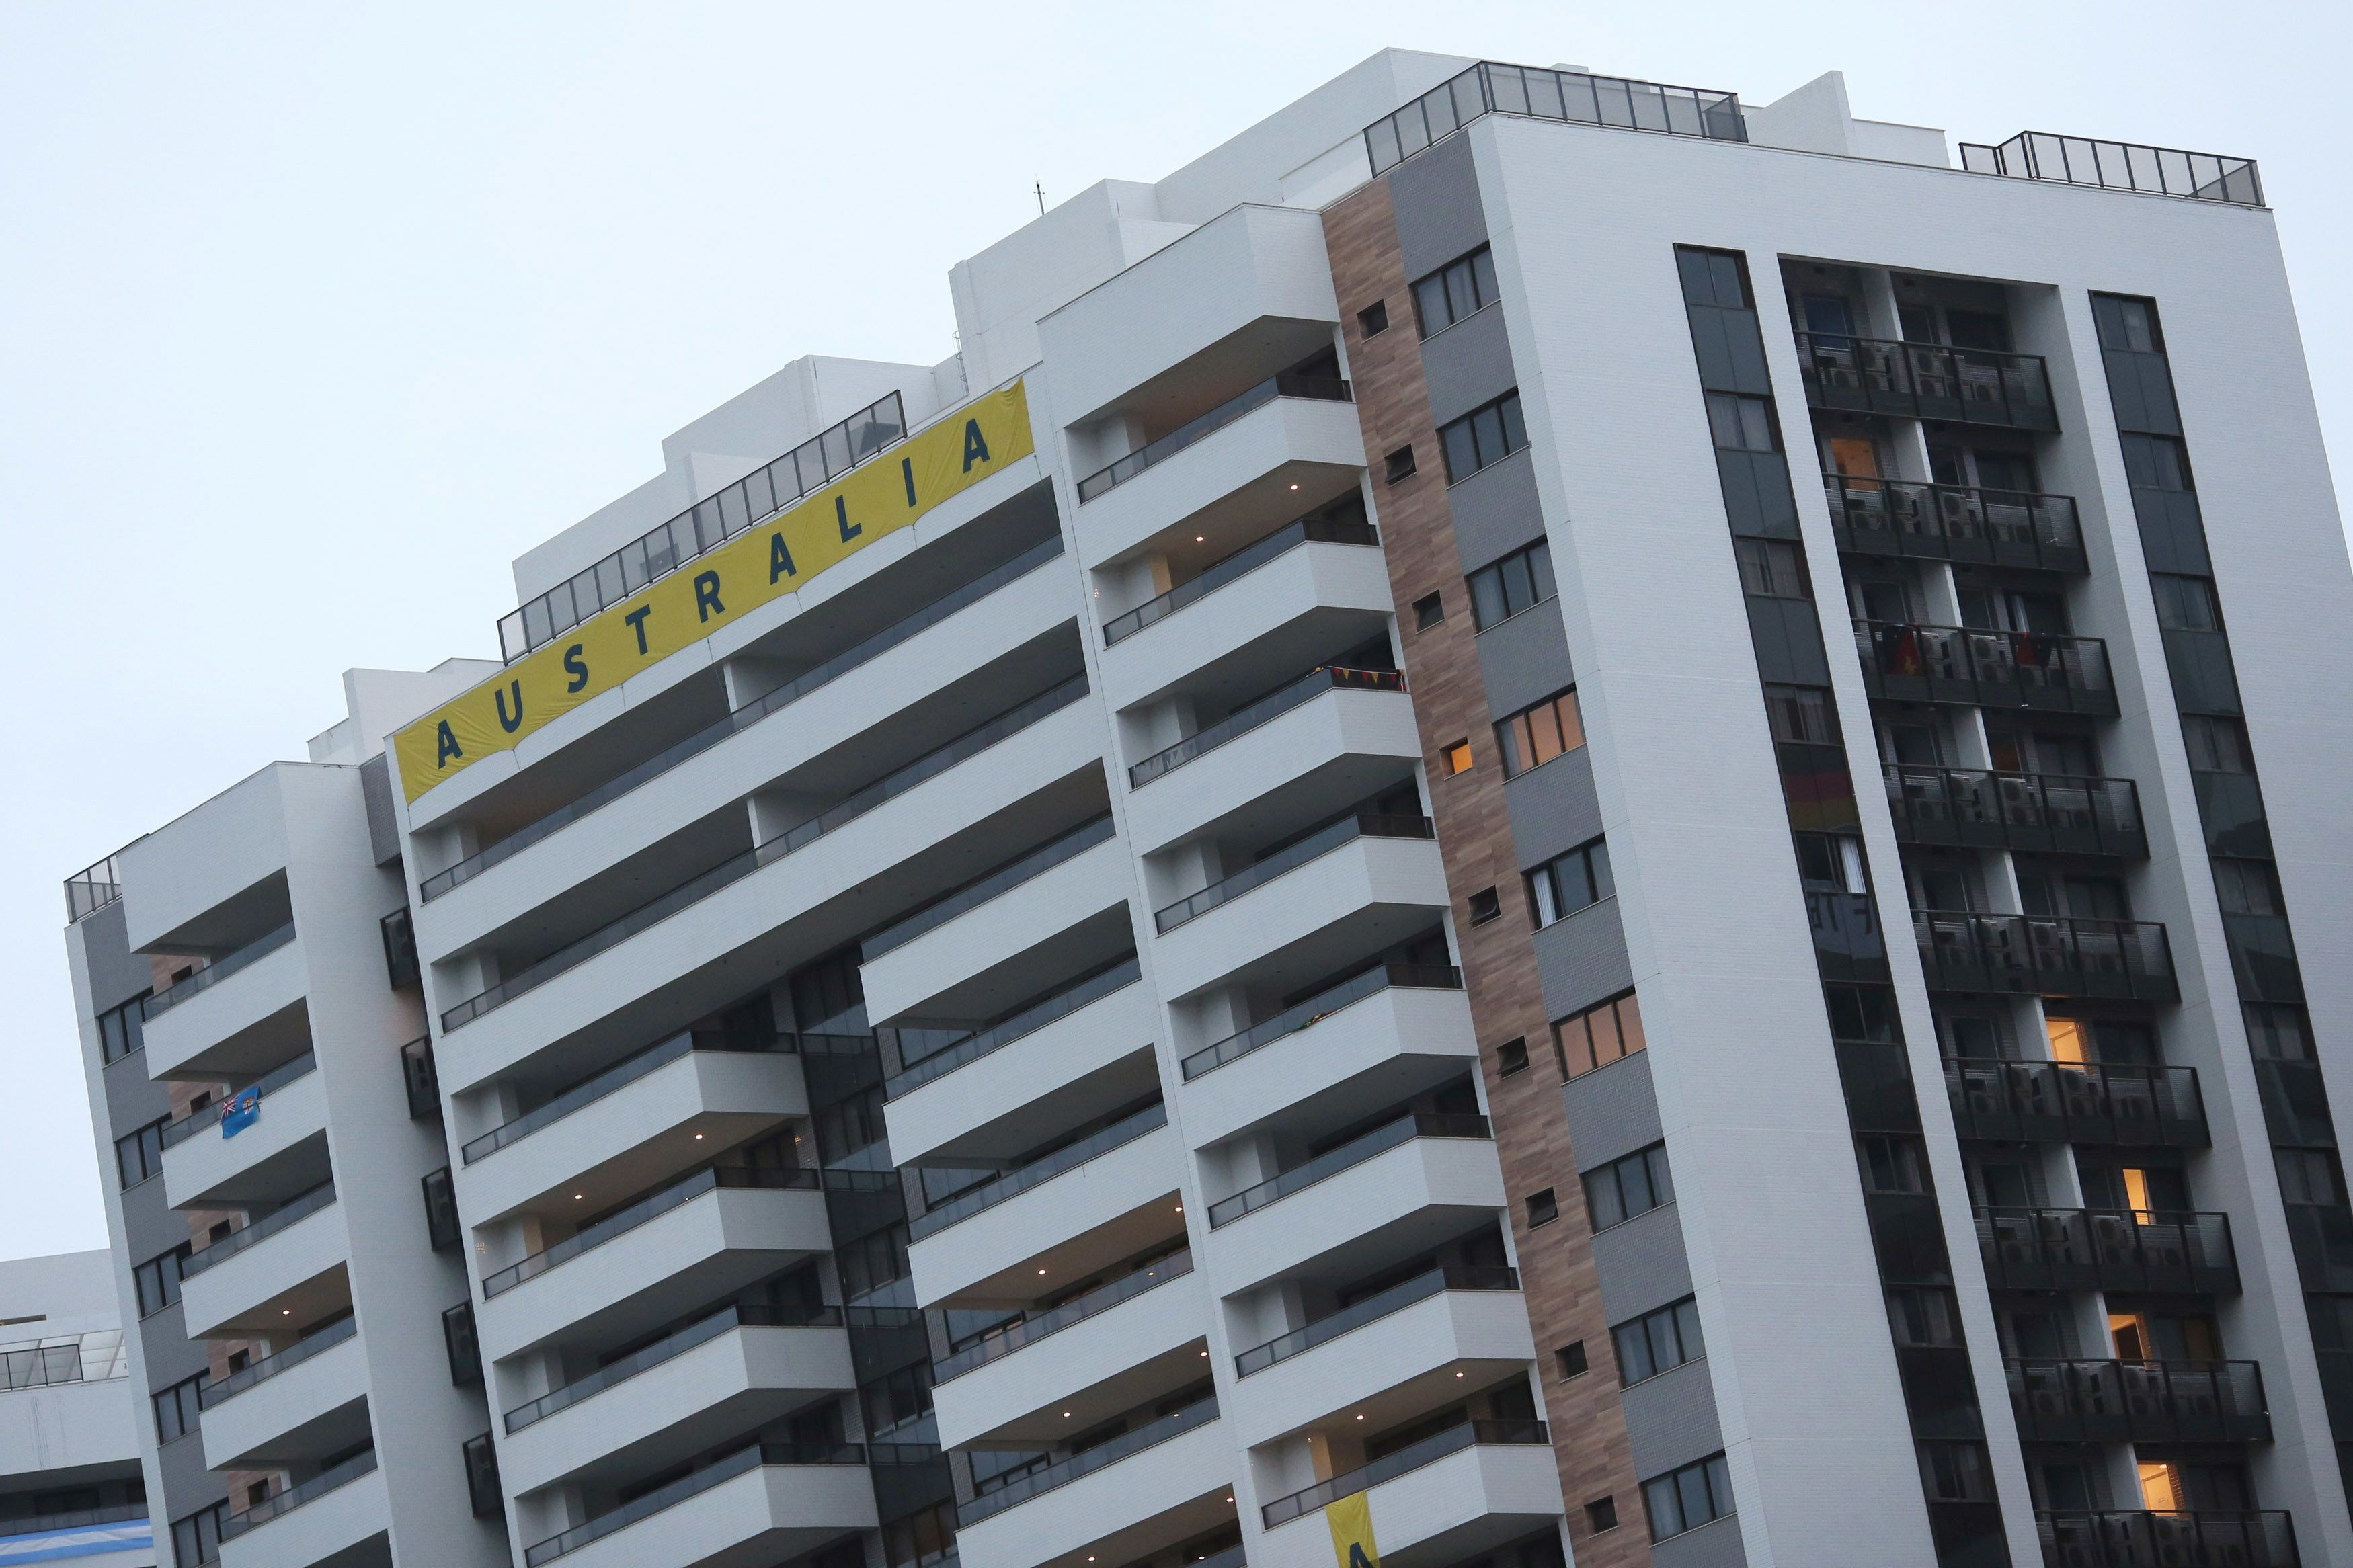 Members of the Australian team were forced to leave their building at the Olympic Village after a fire broke out in the basem